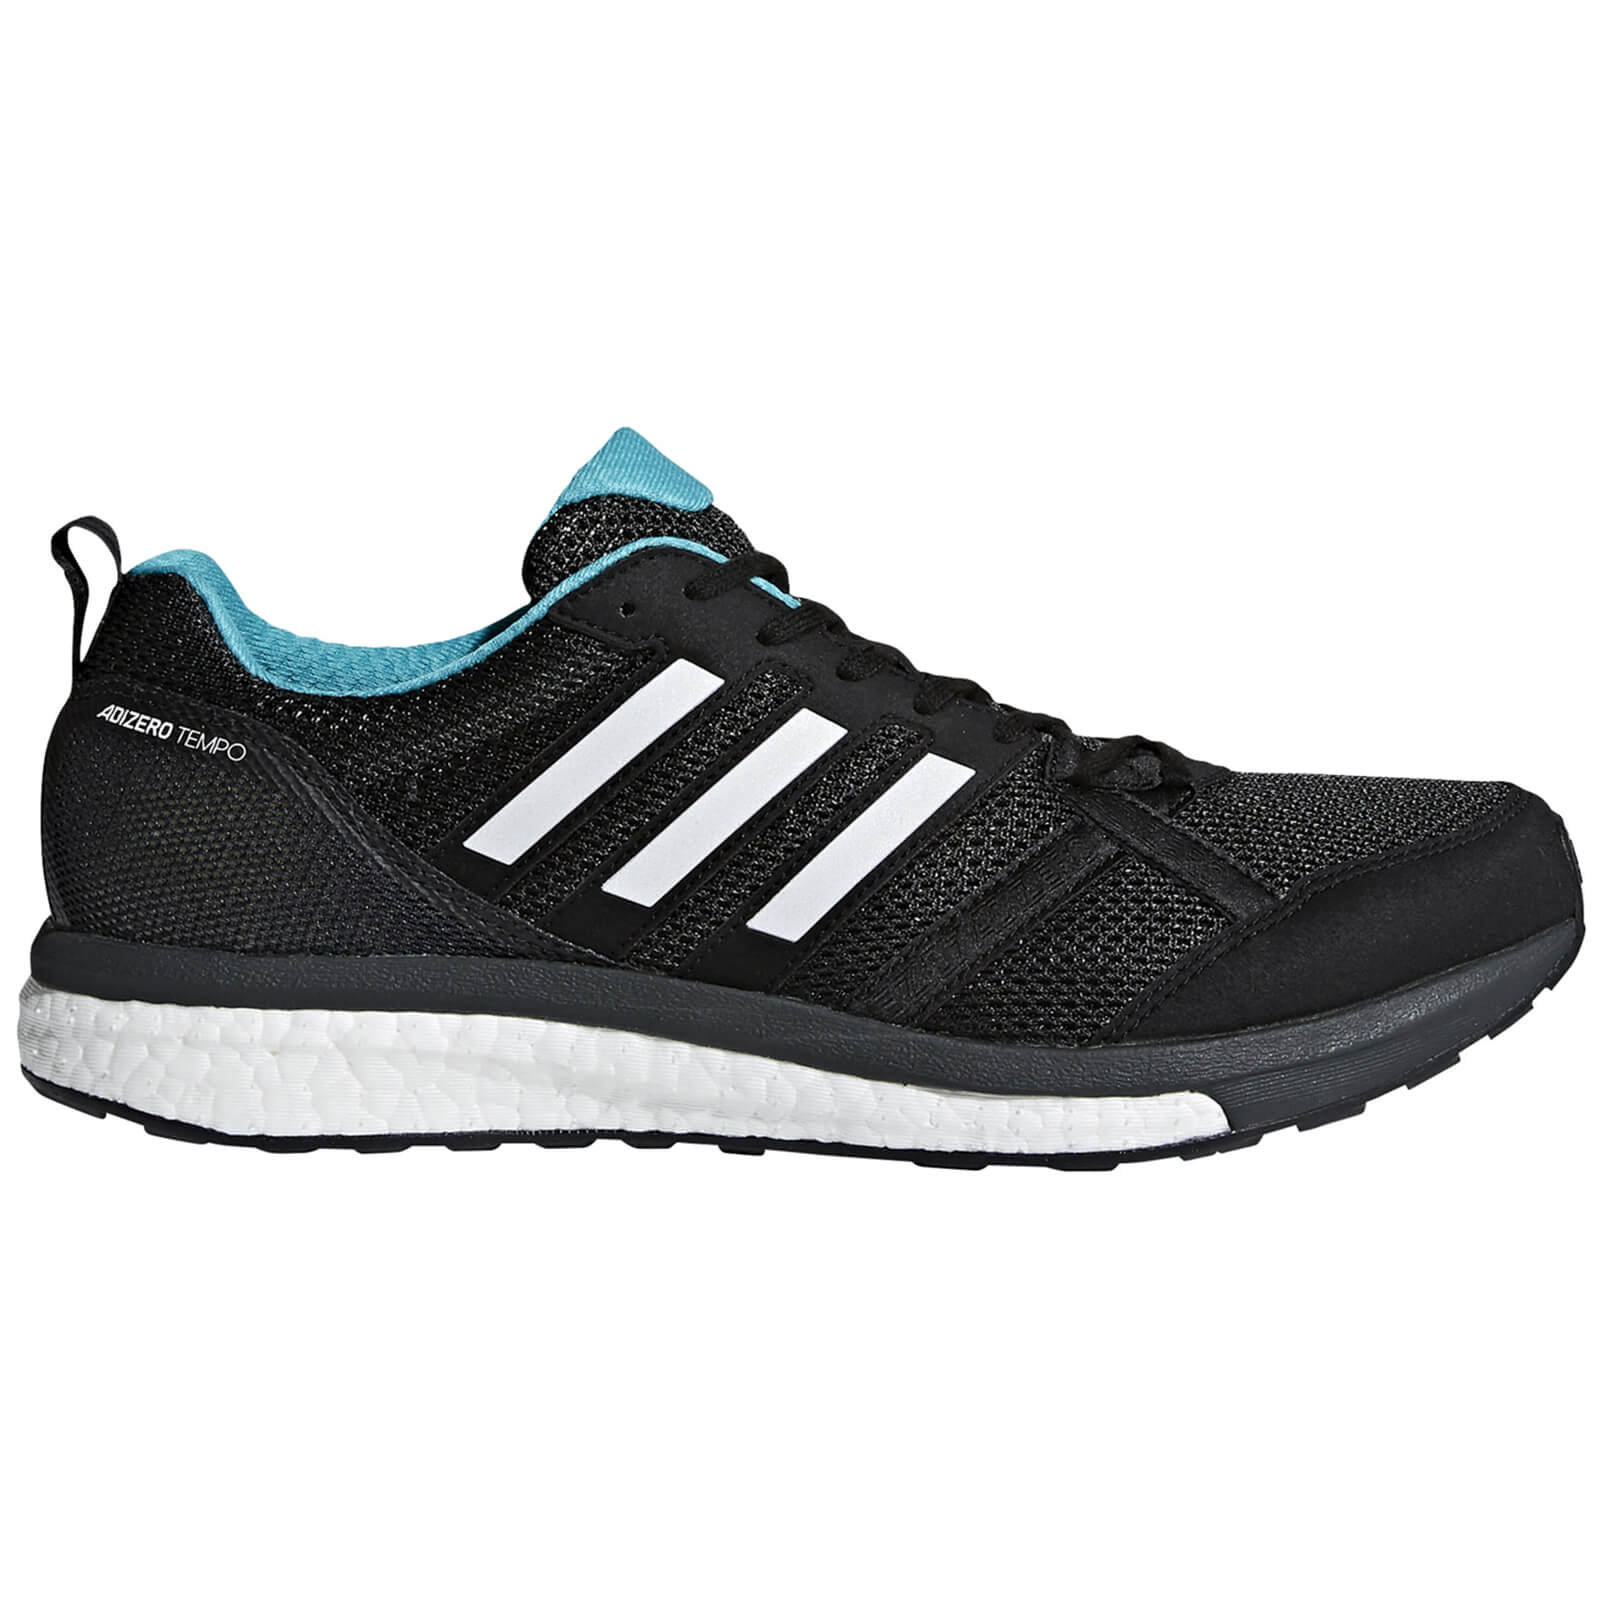 adidas Adizero Tempo 9 Running Shoes - Black